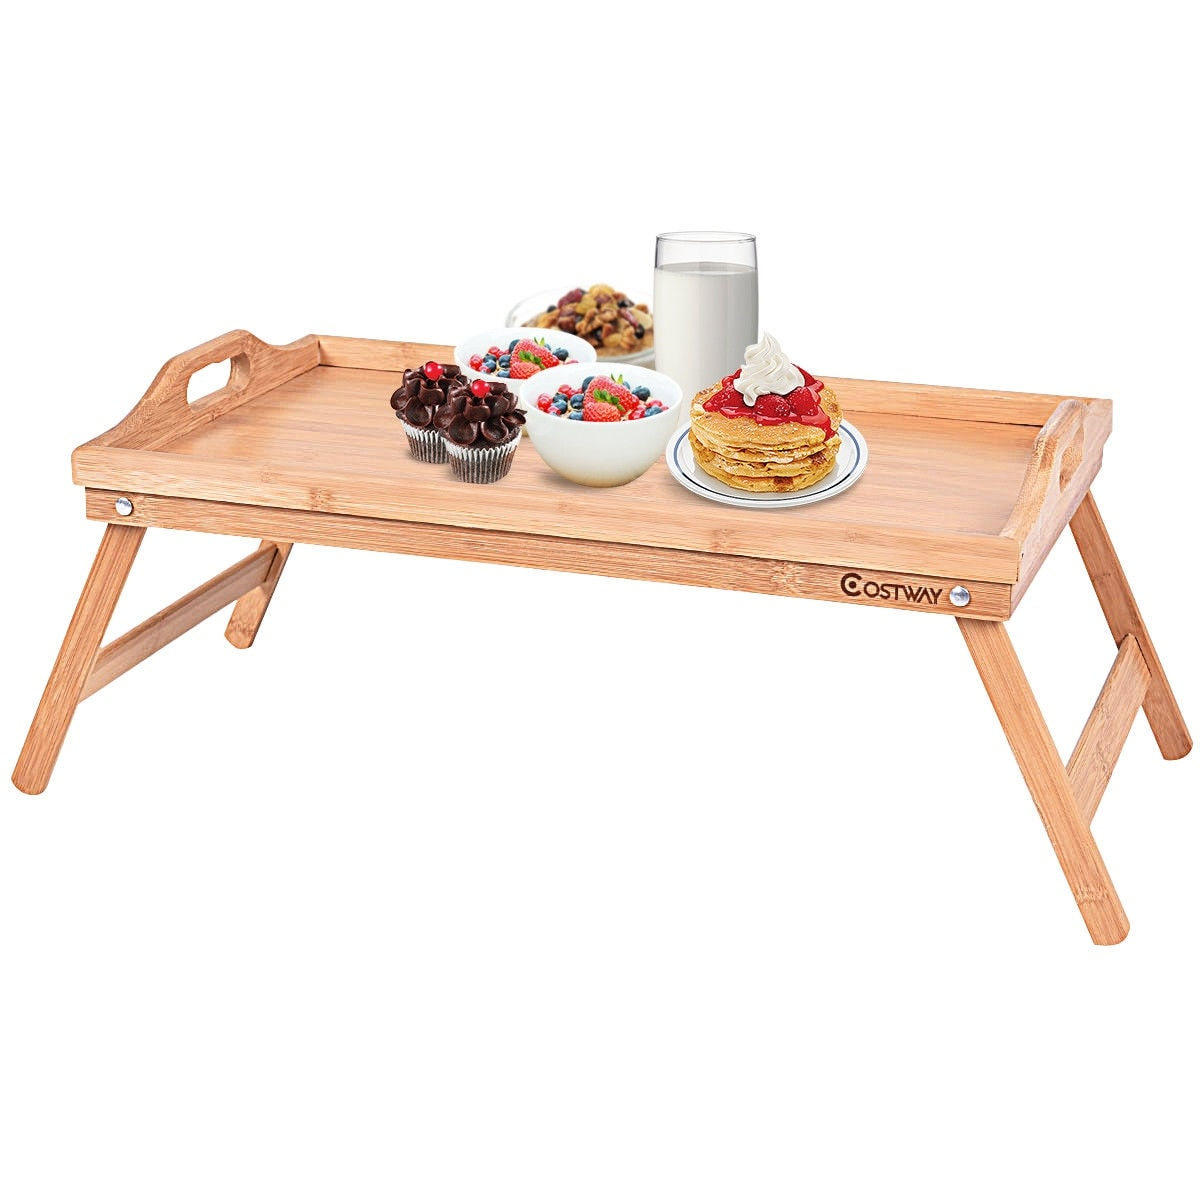 Costway Portable Bamboo Breakfast Bed Tray Serving Laptop Table Folding Leg W Handle Wood